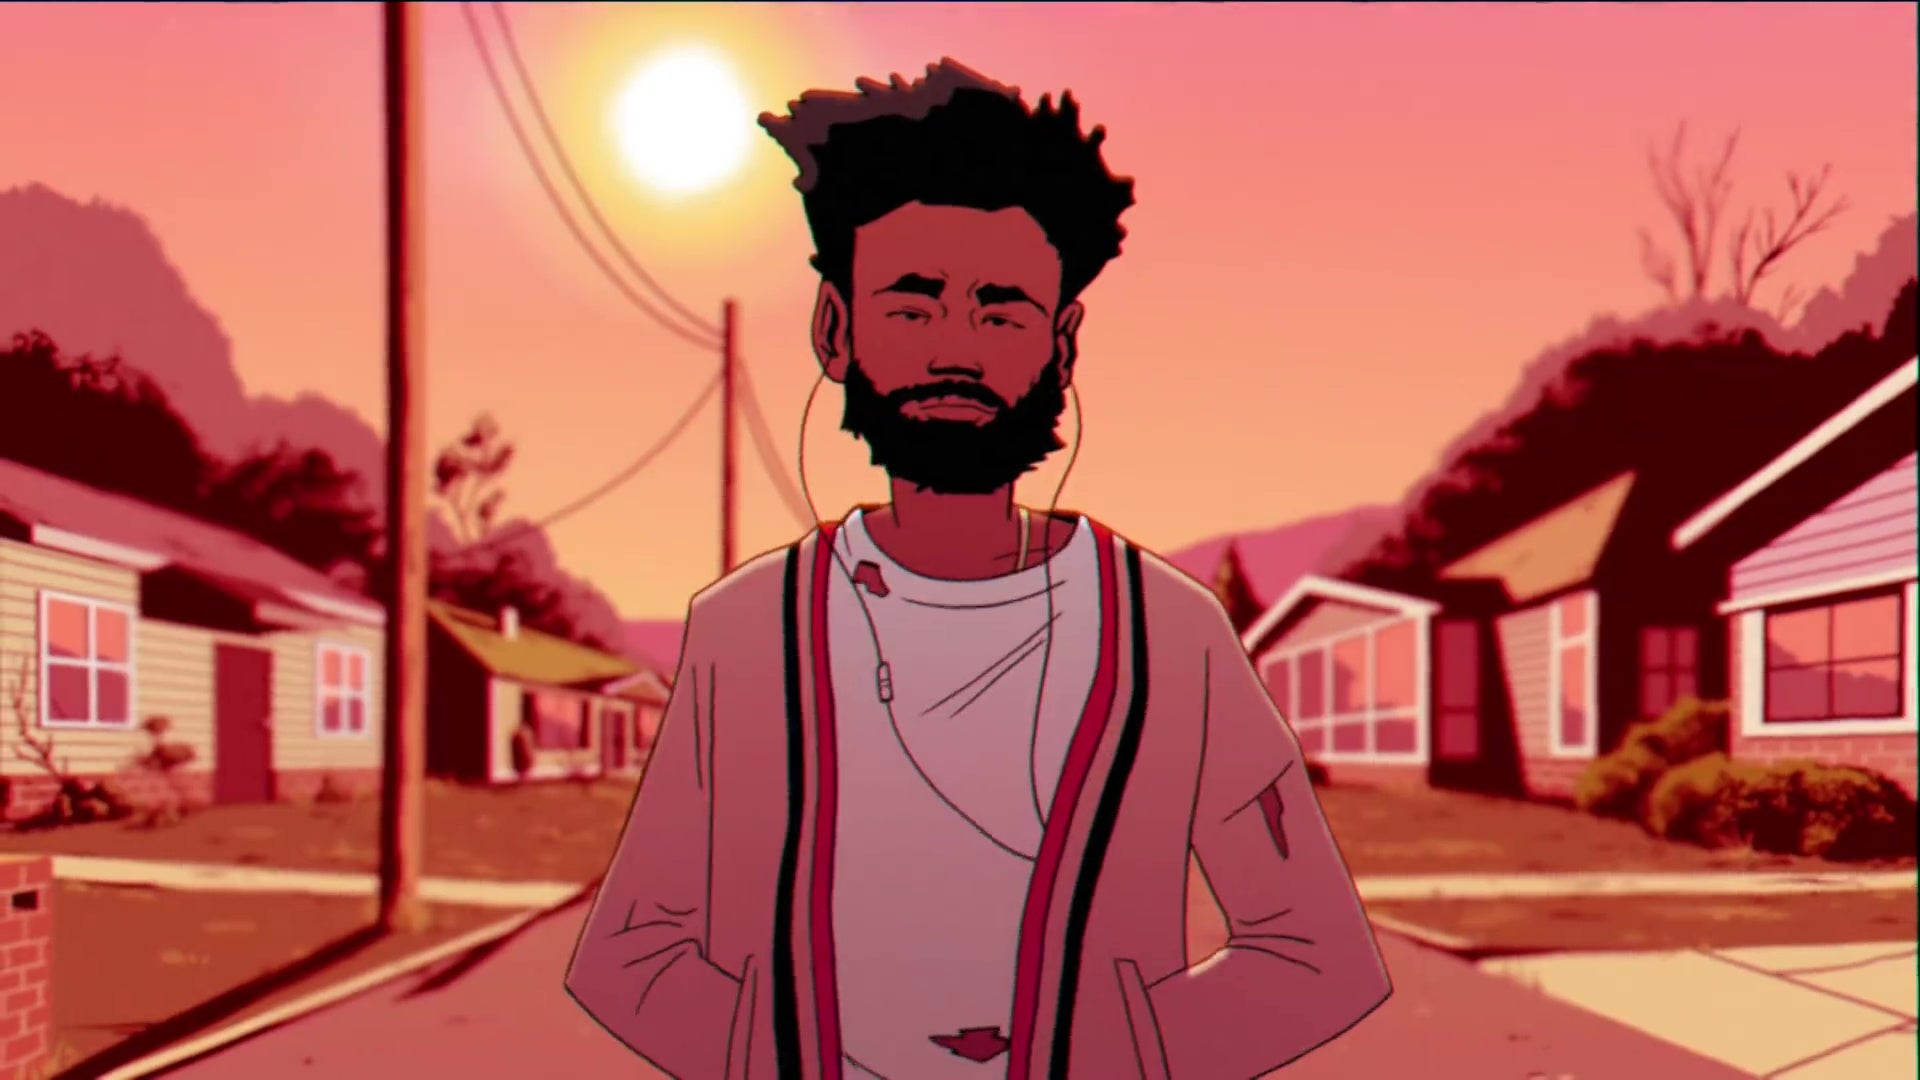 A drawing of Childish Gambino.